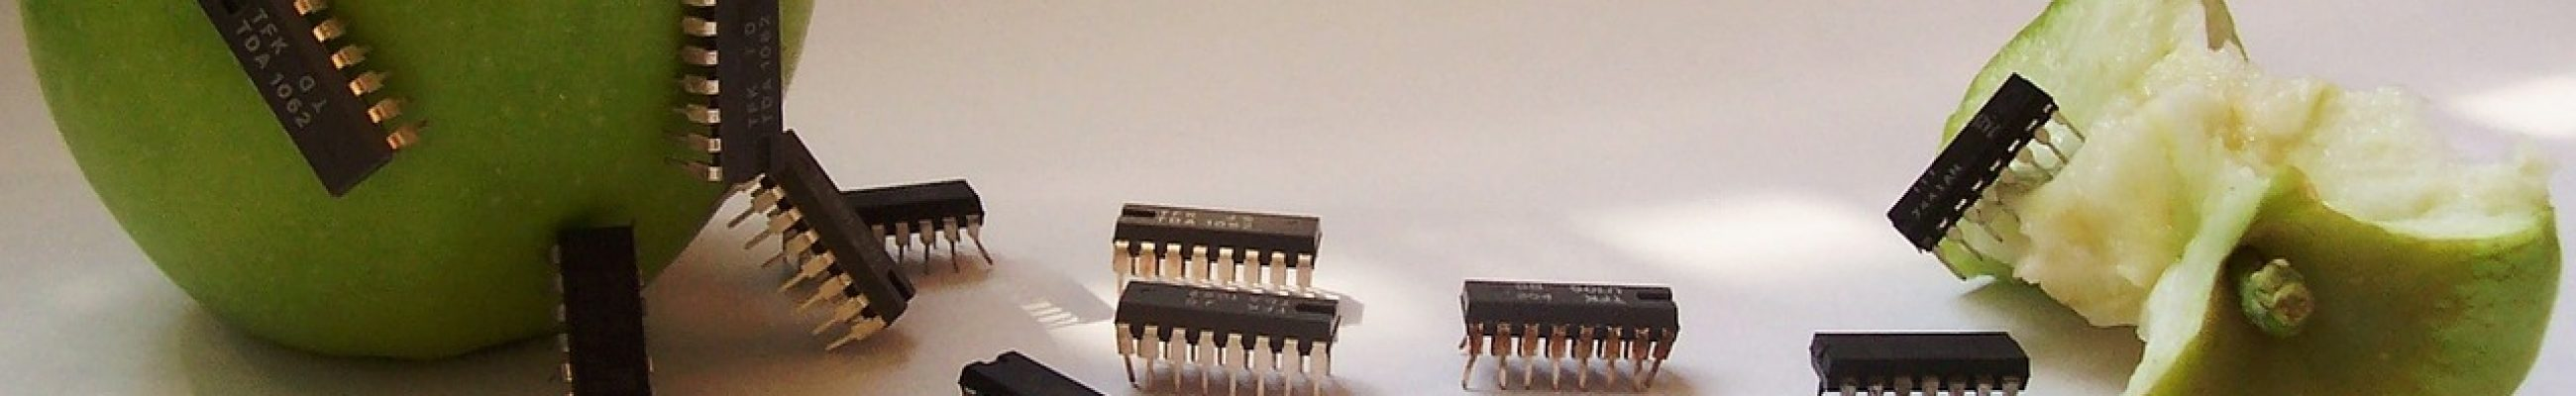 Benefits Of Integrated Circuit Mirror Technologies An